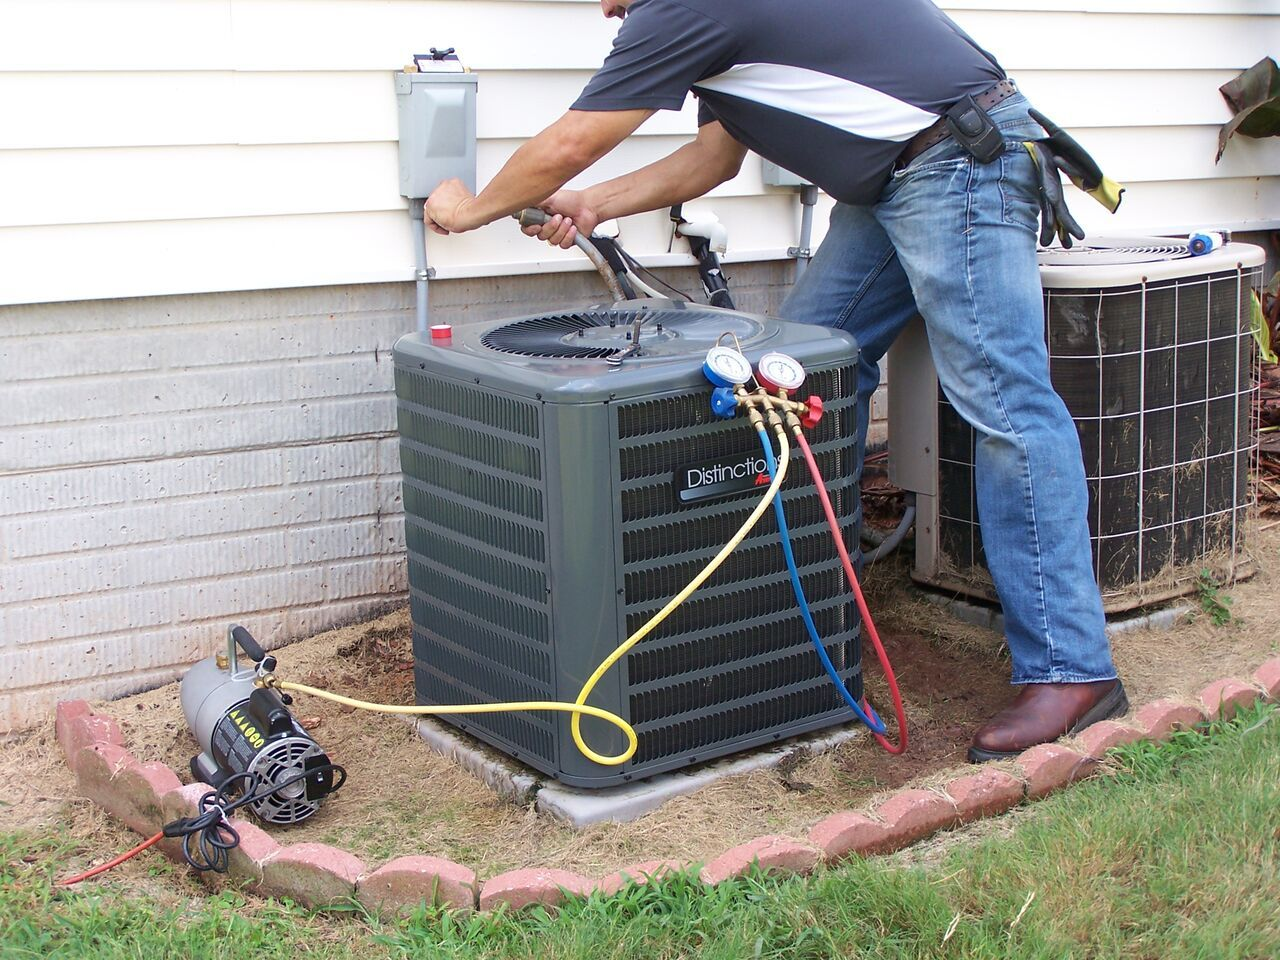 Area Wide Services, Inc. offers emergency repair and house